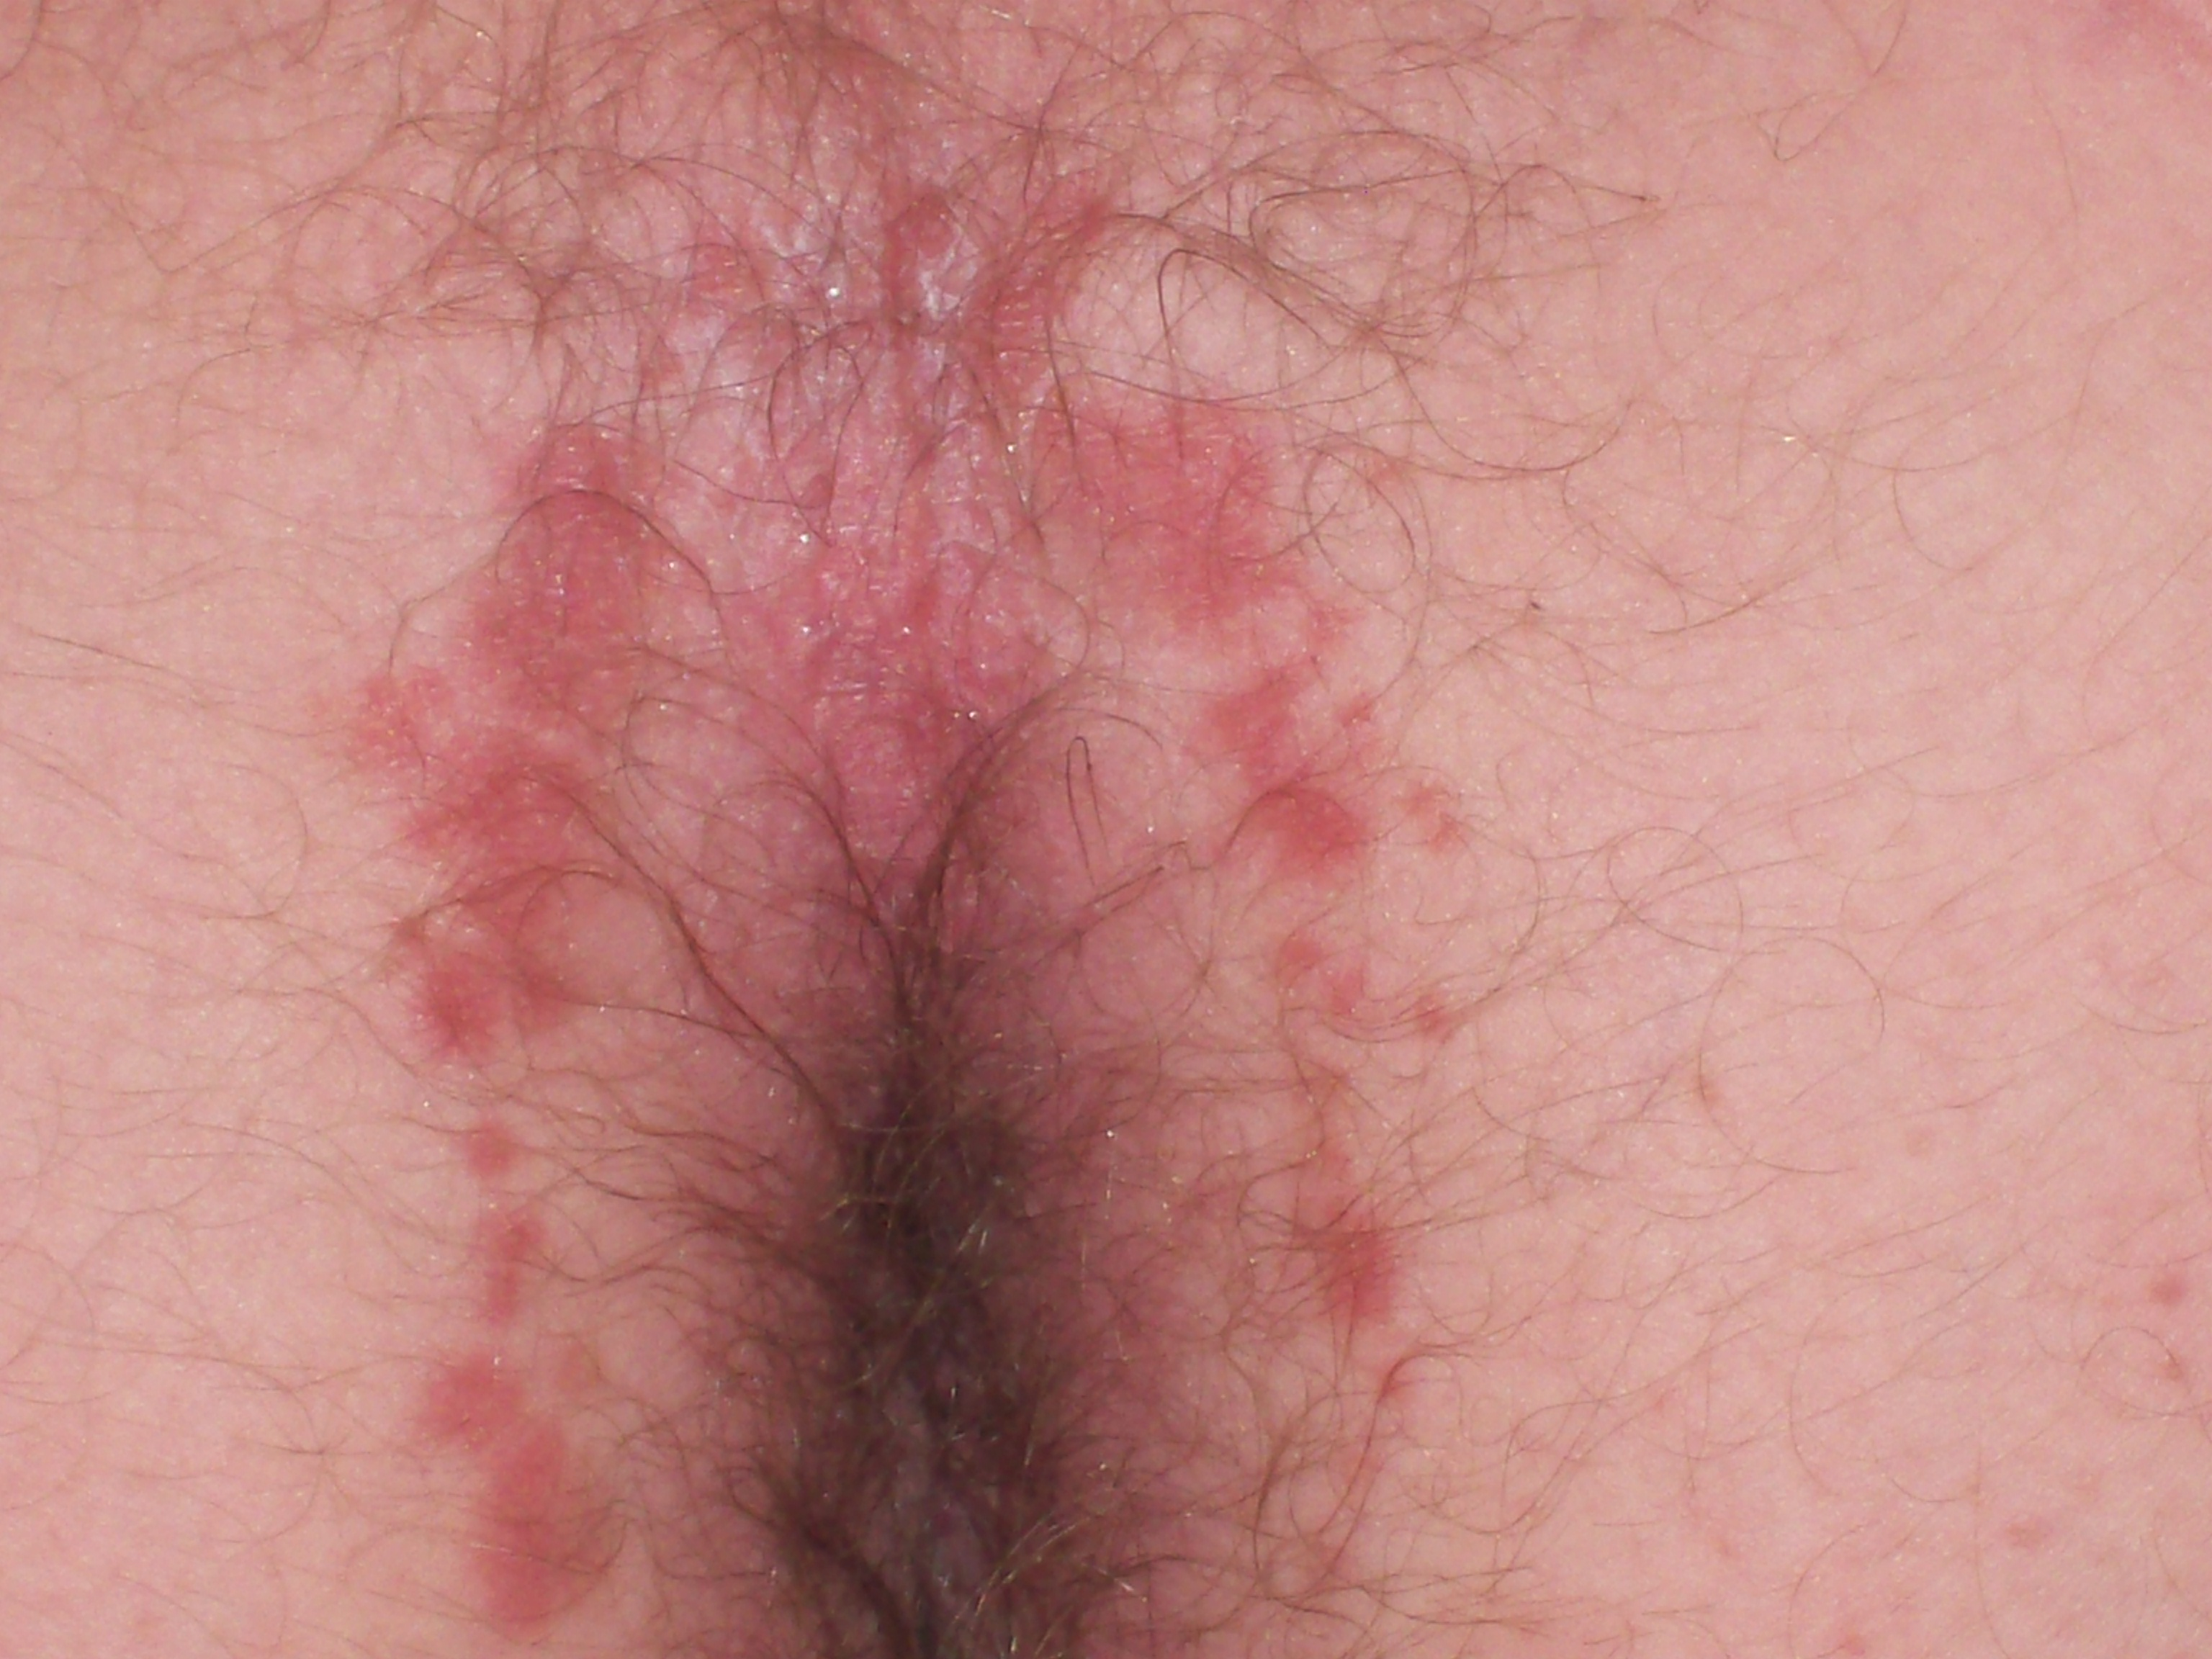 Butt rash adult male